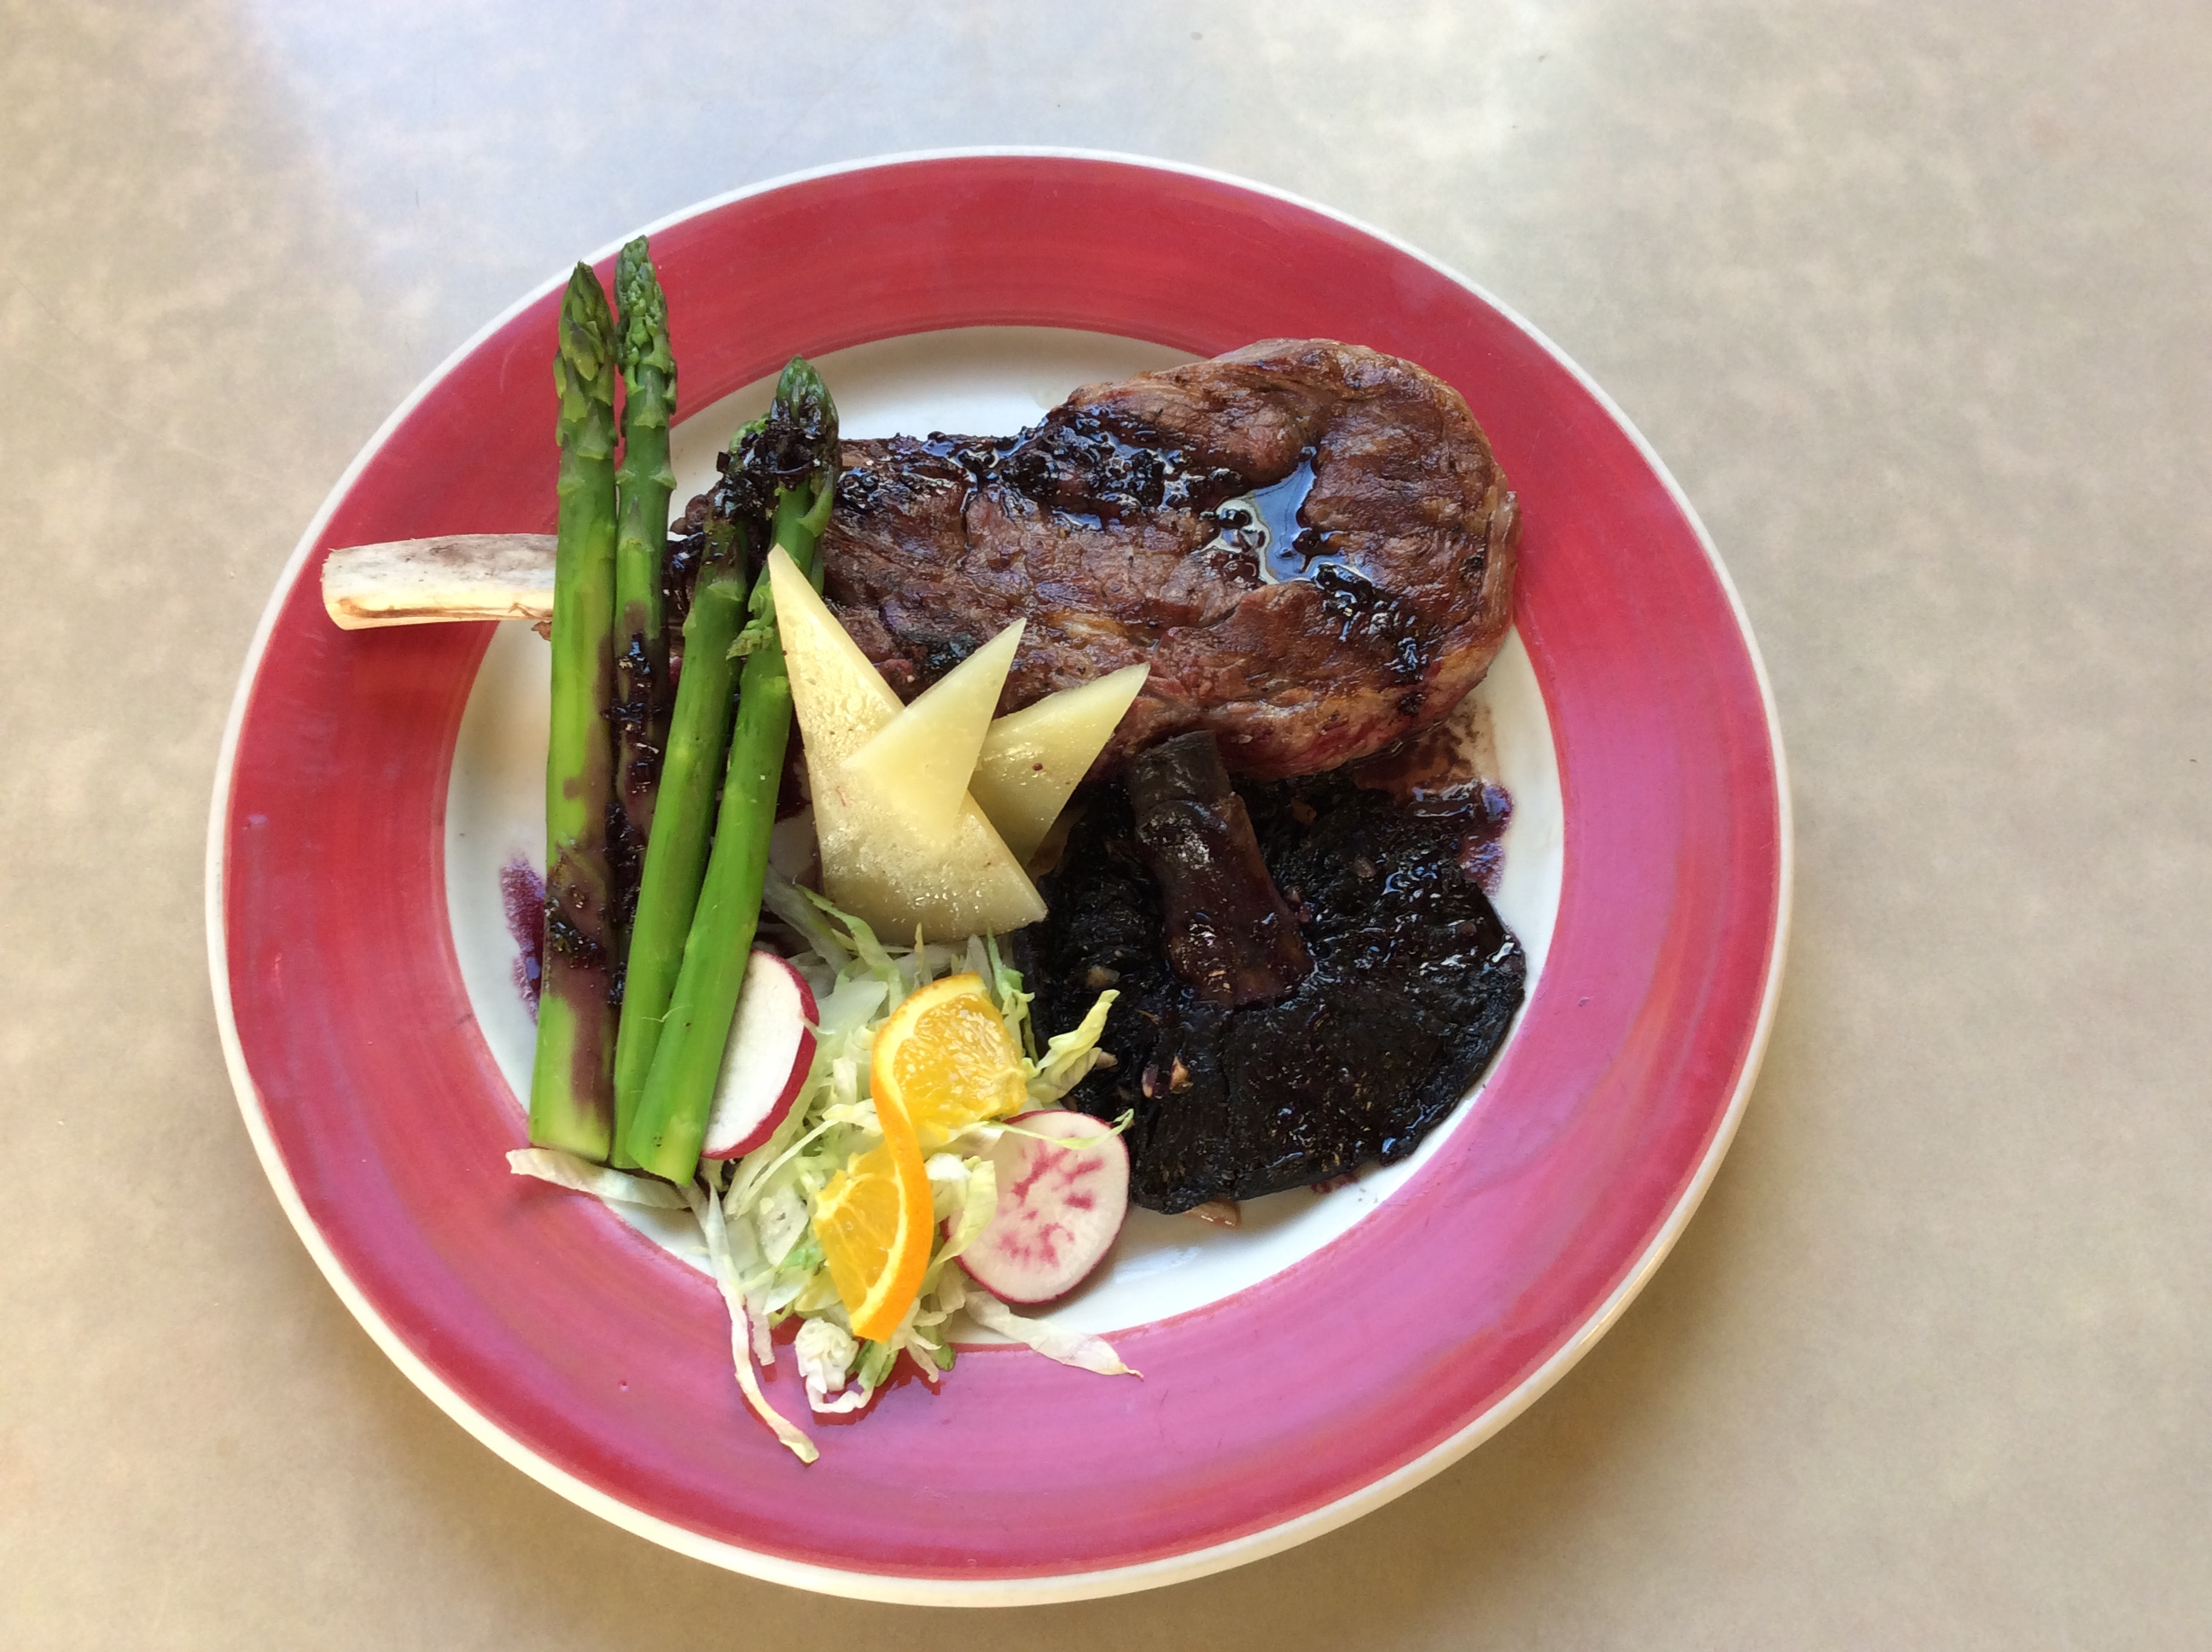 plate with steak and vegetables